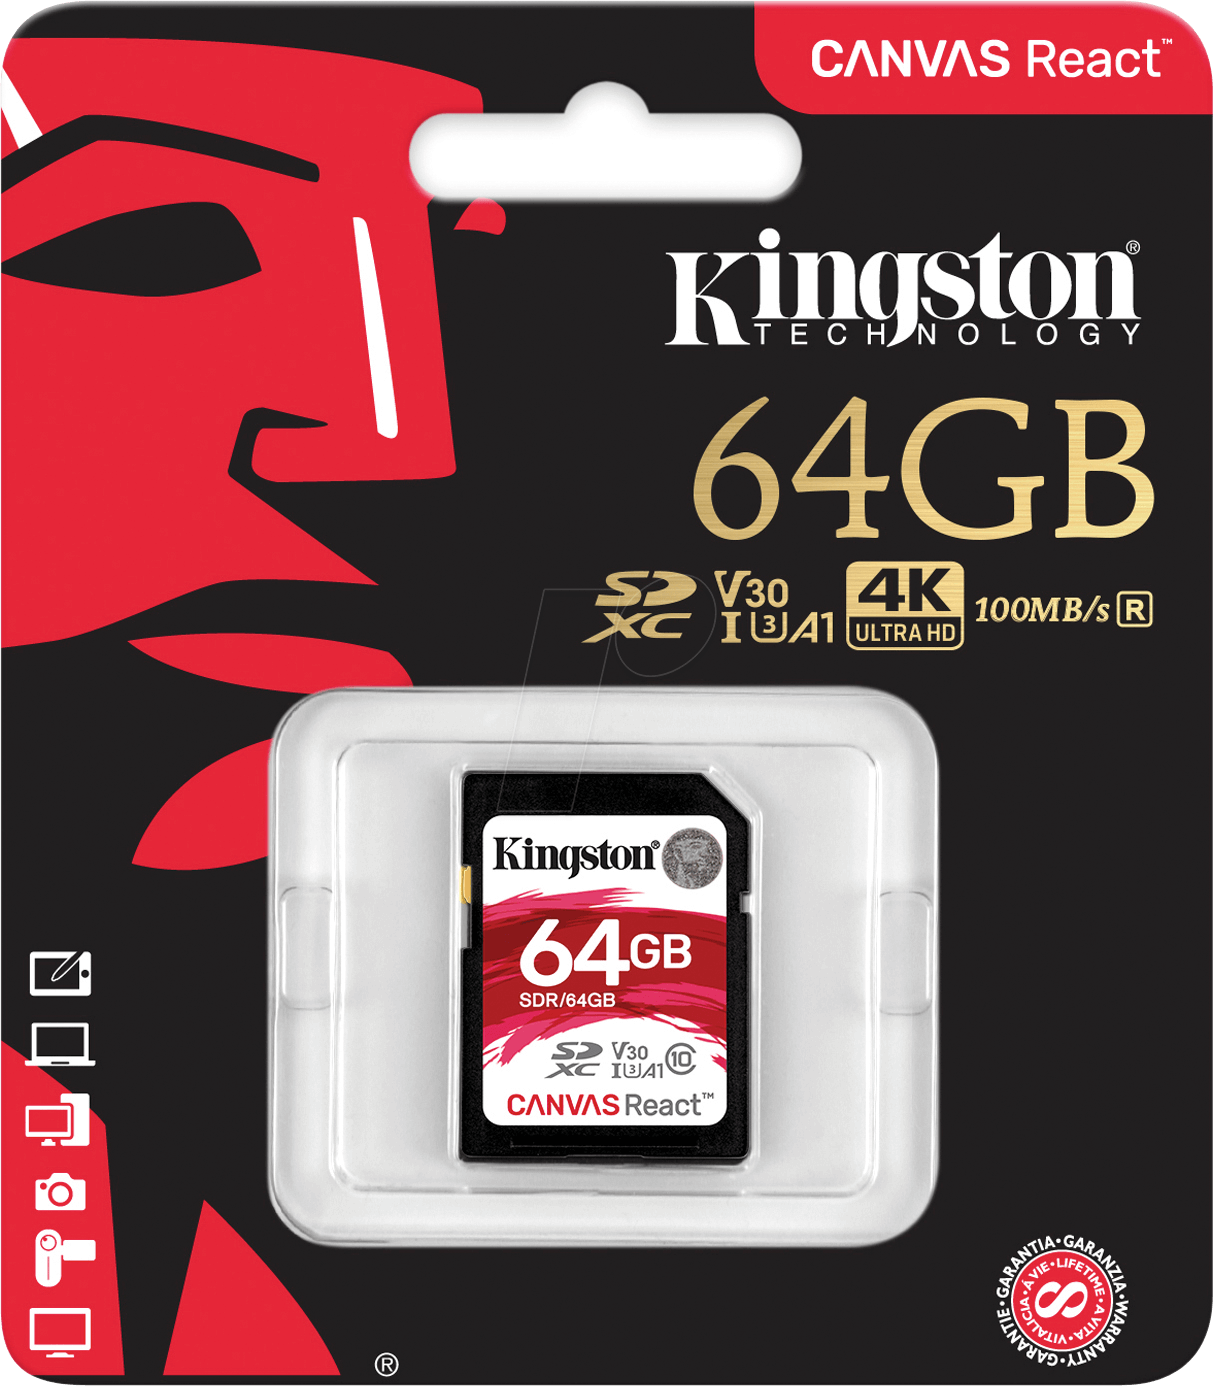 https://cdn-reichelt.de/bilder/web/xxl_ws/E200/KINGSTON_SDR64GB_03.png